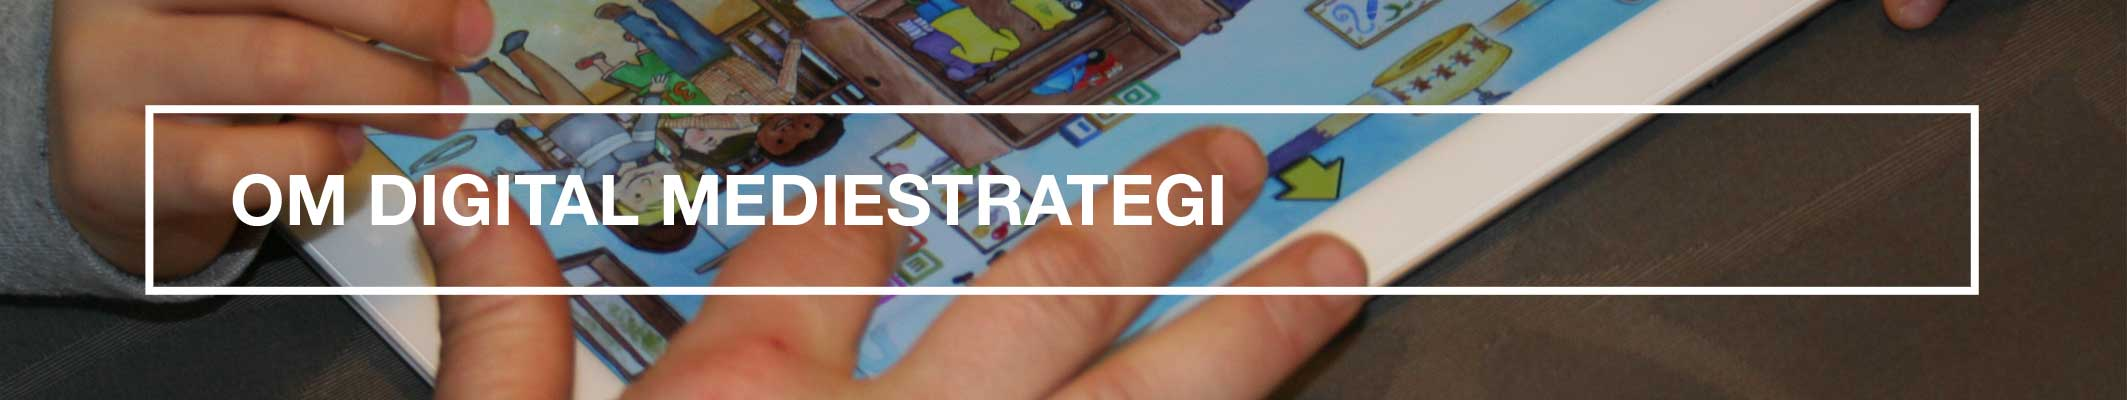 Om_digital_mediestrategi